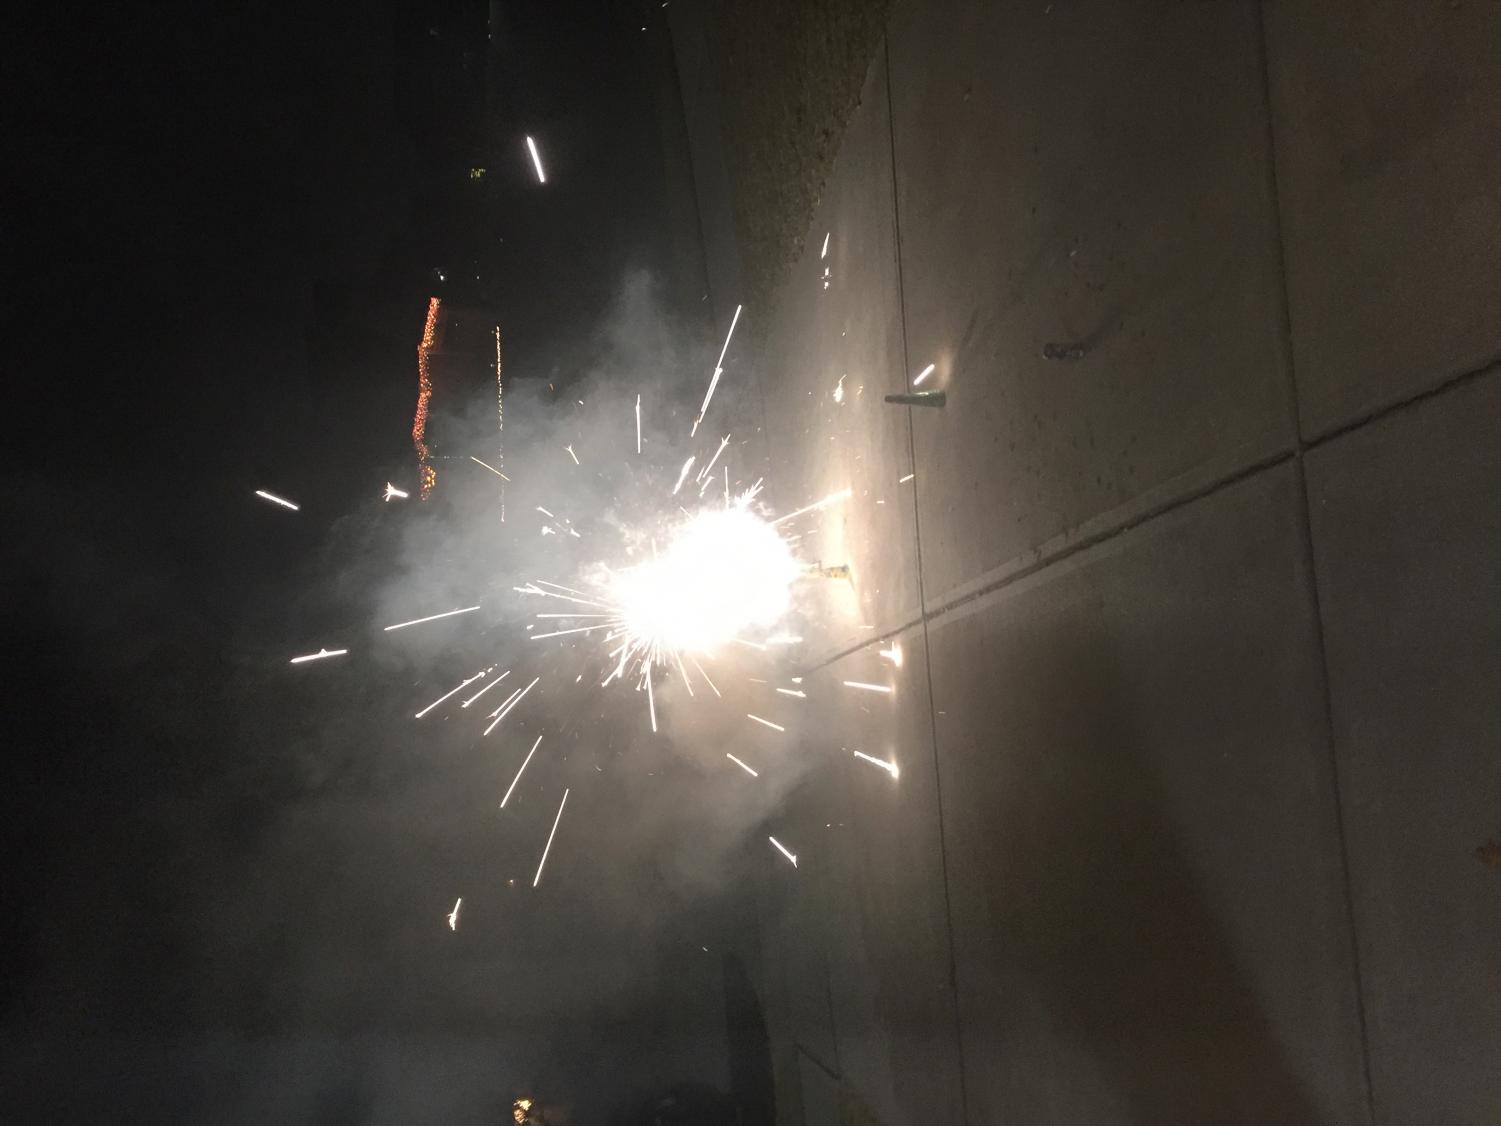 Many people celebrate Diwali with sparklers and such!